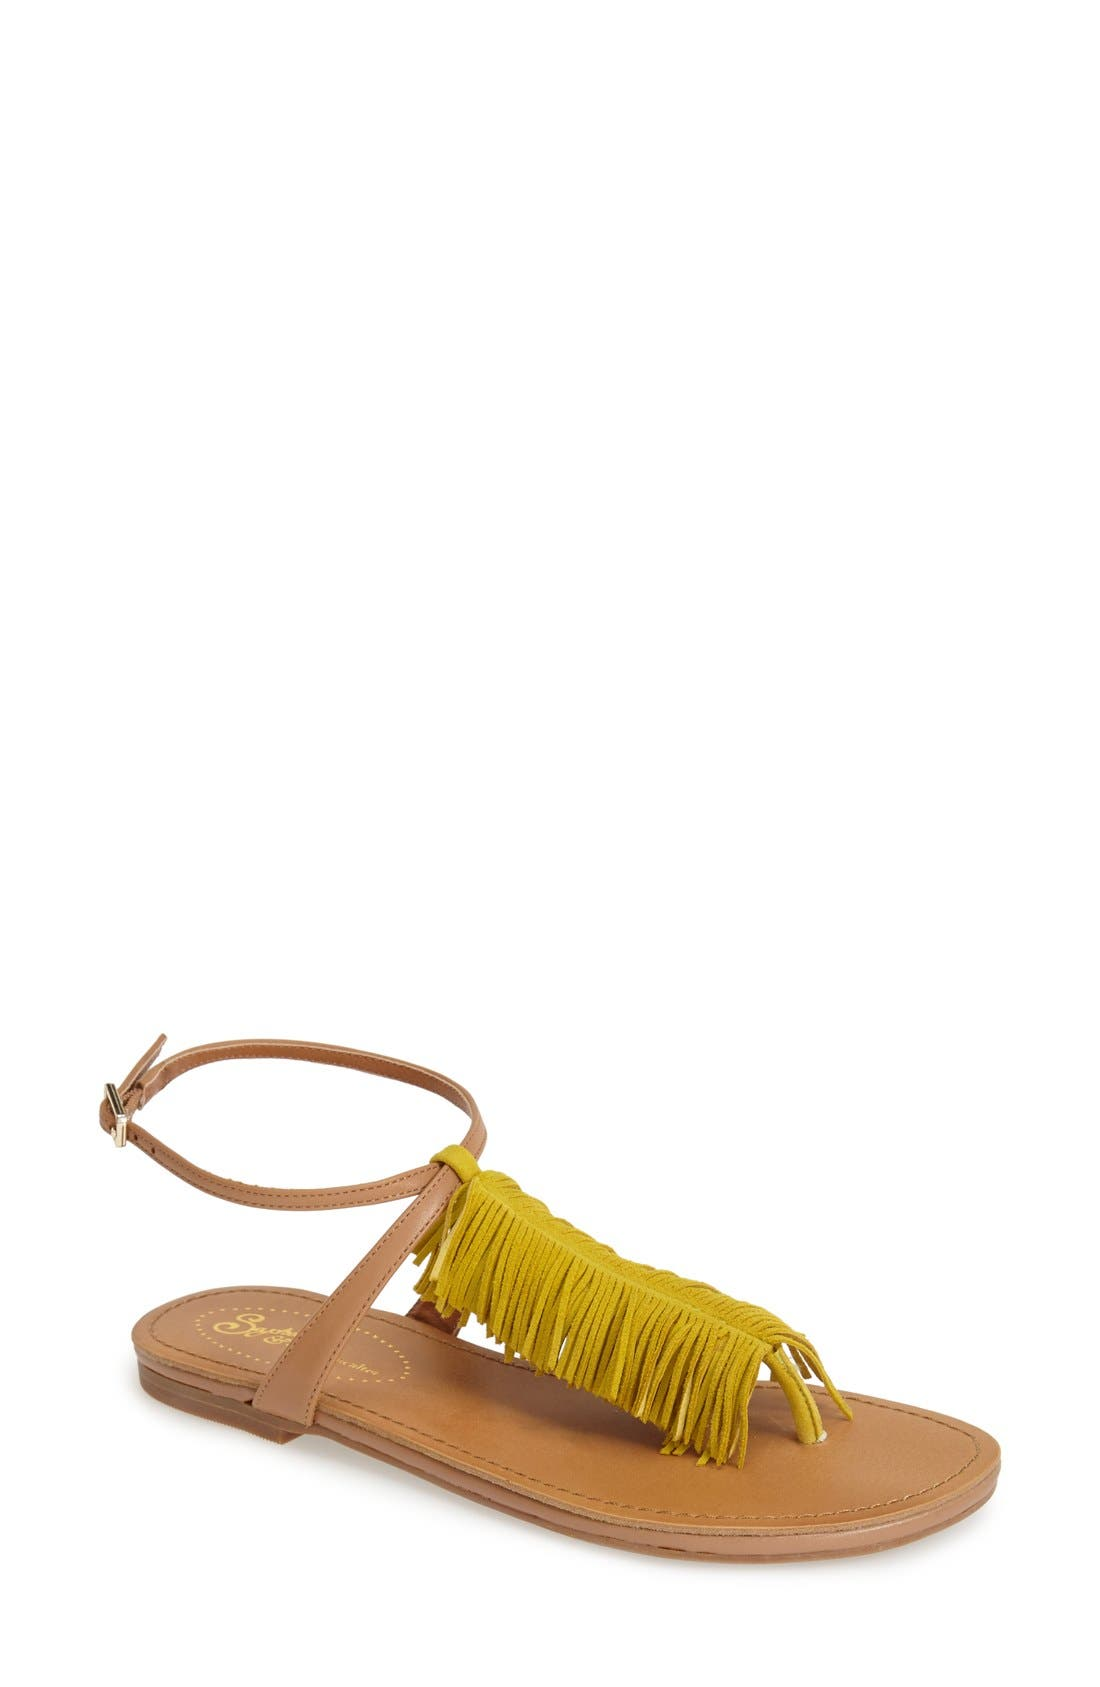 Alternate Image 1 Selected - Seychelles 'Confetti' Ankle Strap Sandal (Women)